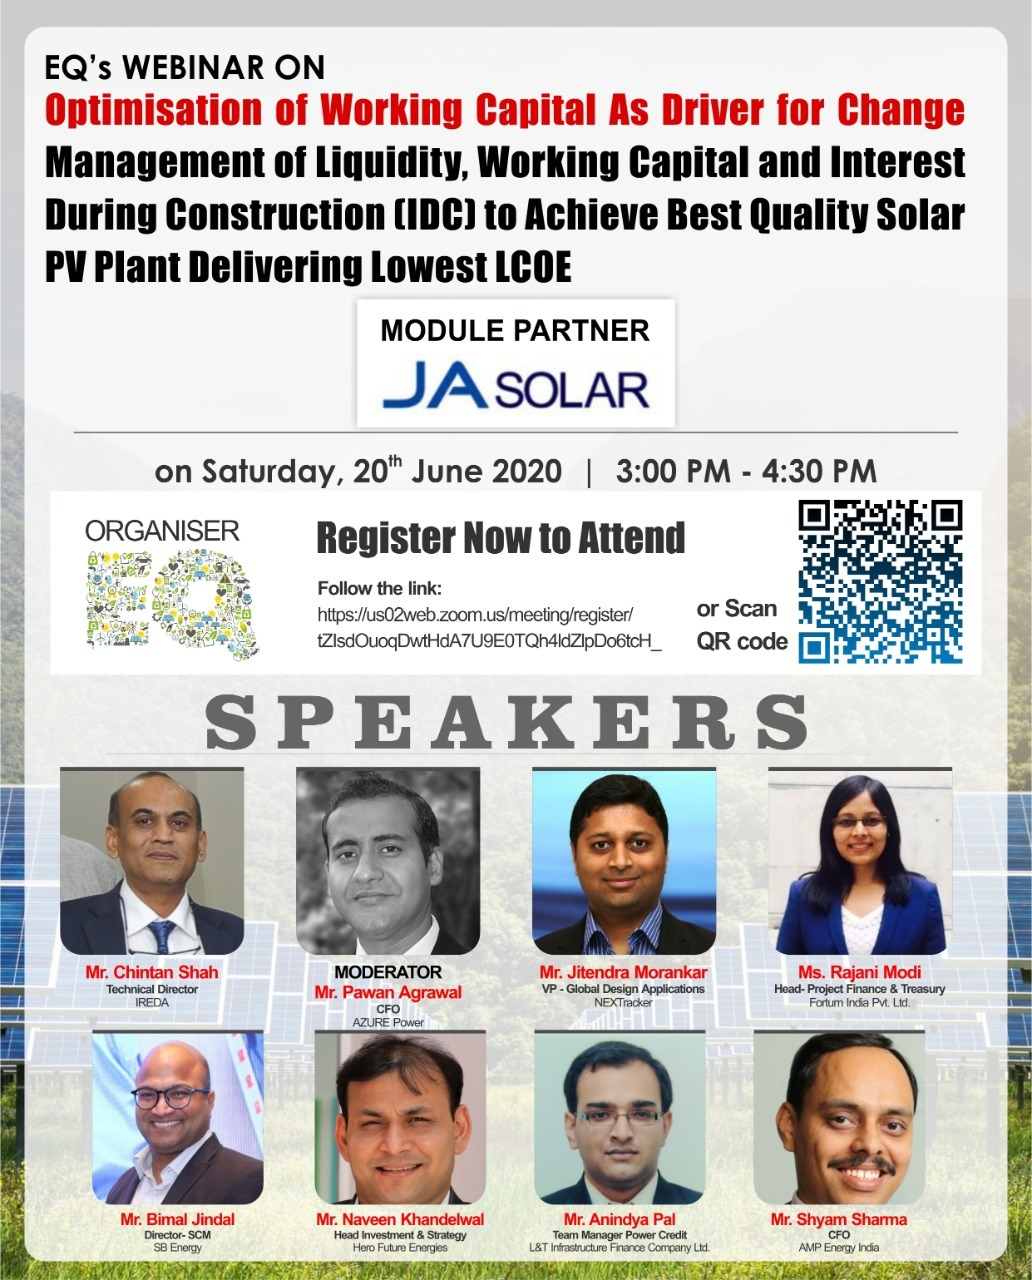 """EQMag & JA Solar Presents Webinar on """"Optimisation of Working Capital as Driver for Change"""" on Saturday June 20th from 3PM Onwards"""